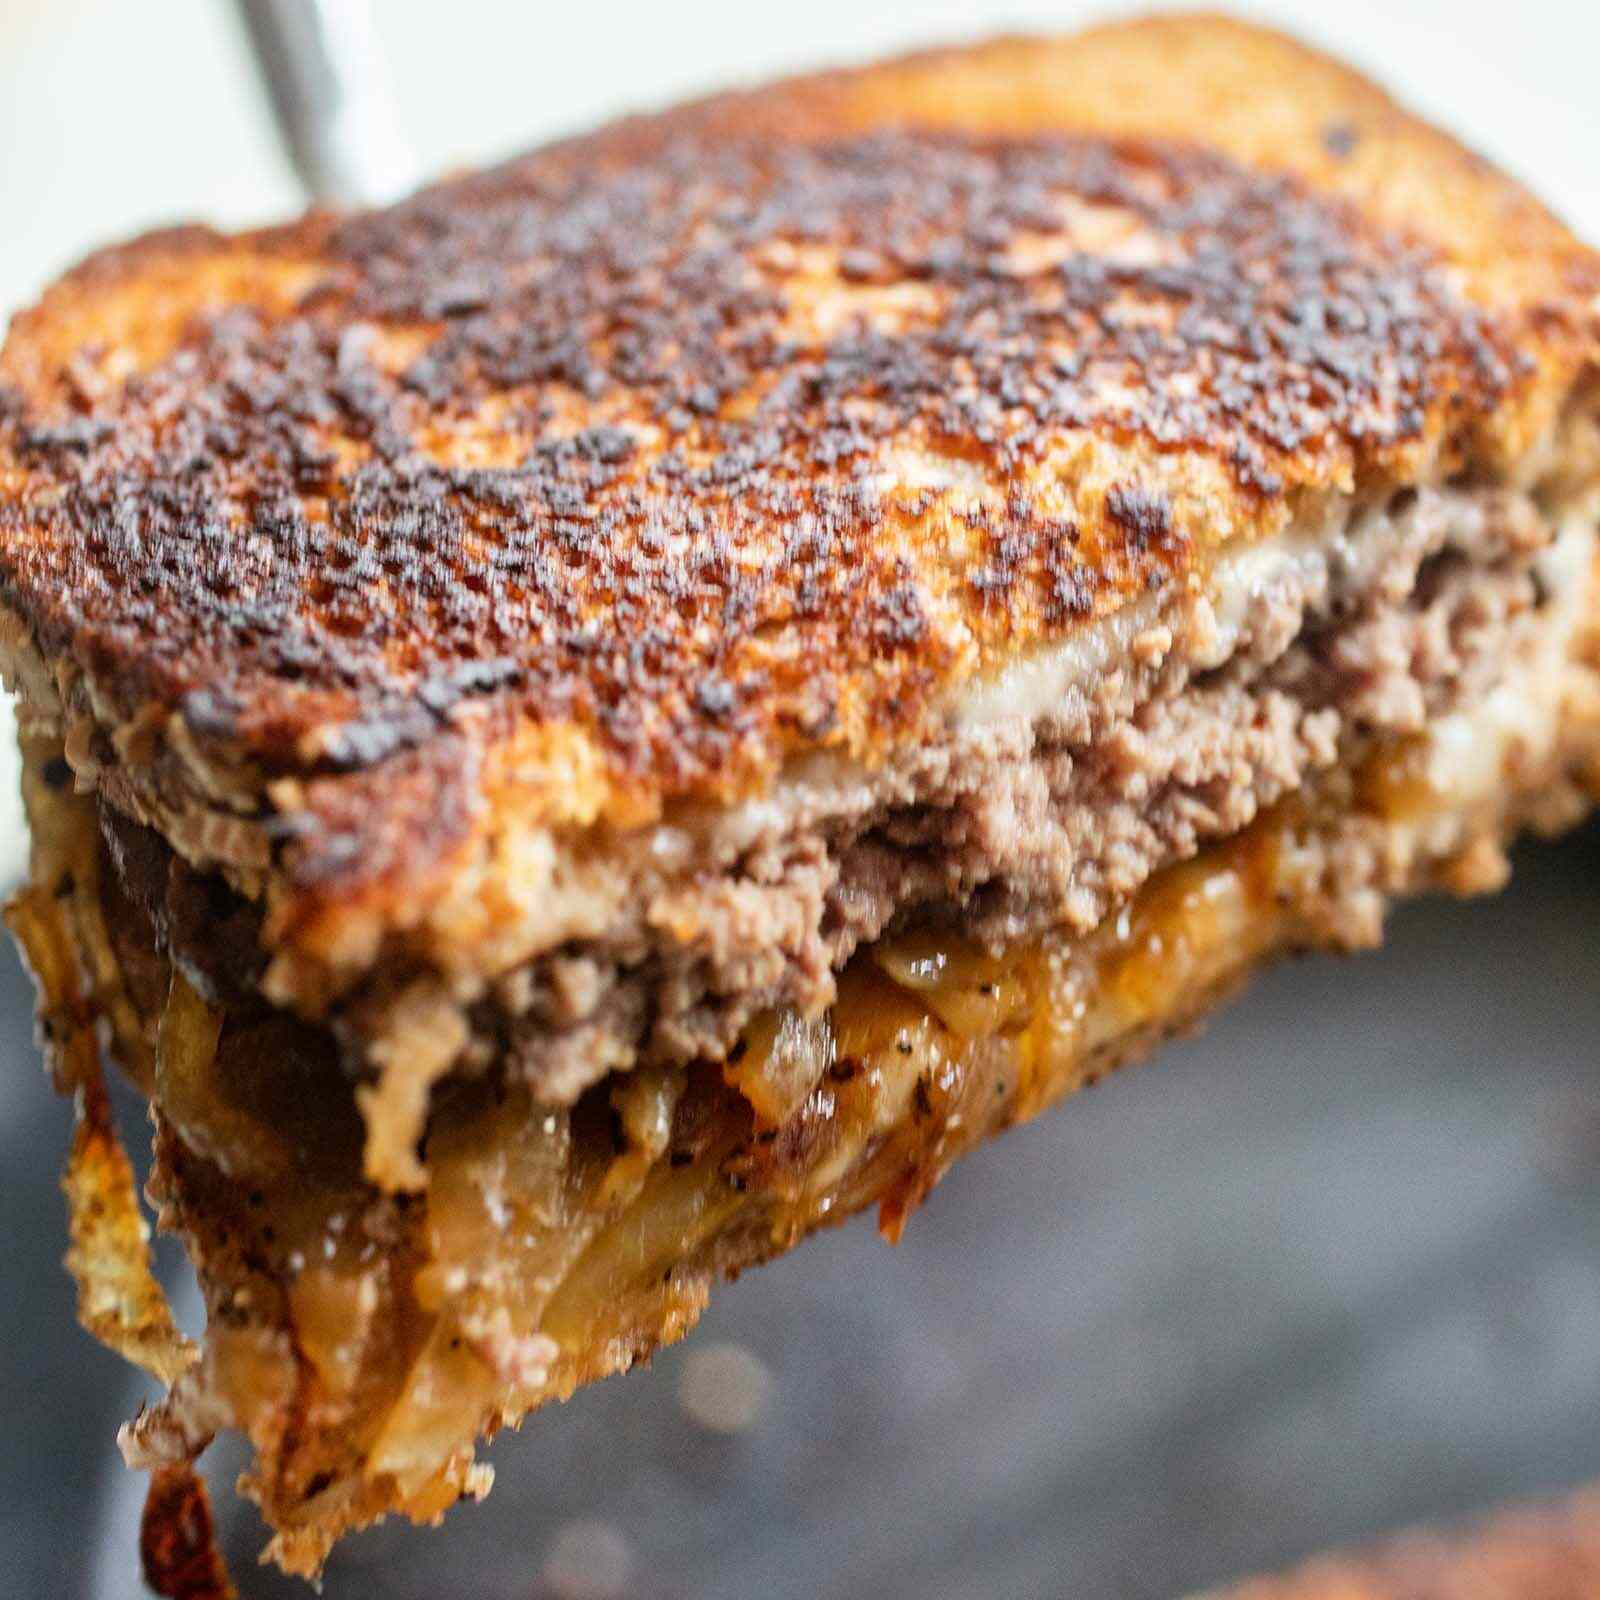 Best patty melt with toasted bread, melted cheese and beef patty being lifted with a spatula.